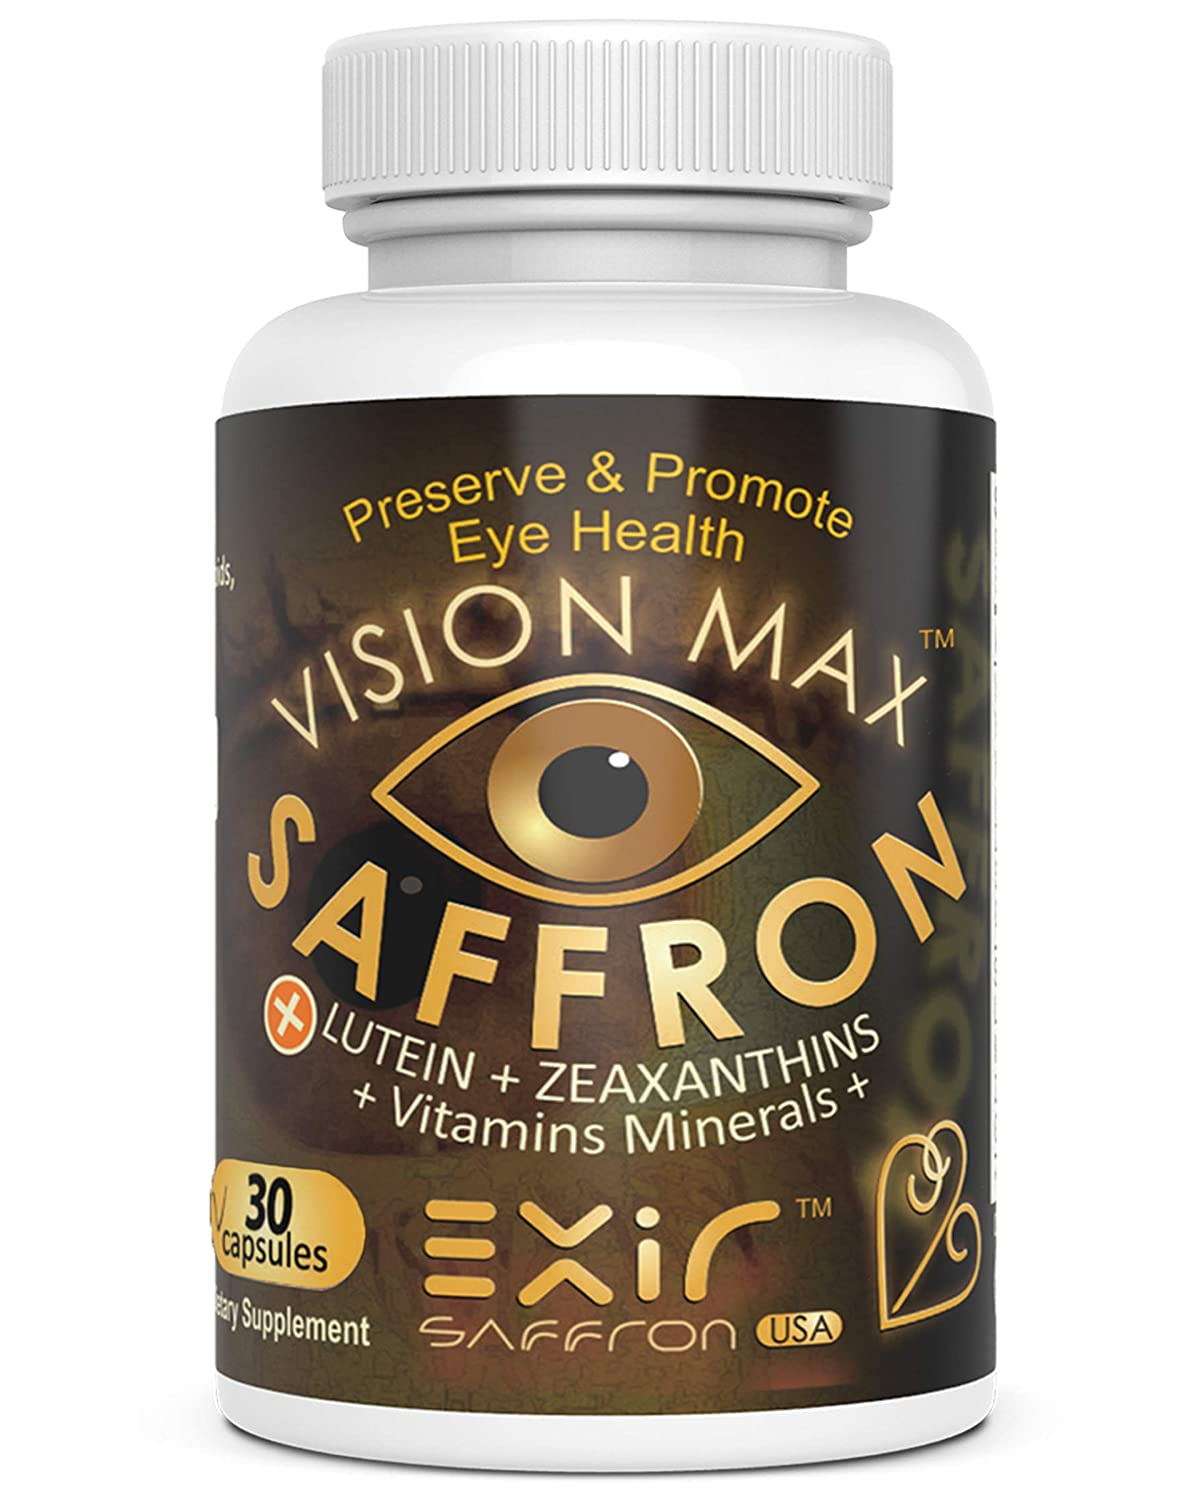 Eye Vision Vitamins - Best Eye Support Supplement for Computer Users with Lutein, Saffron, Zeaxanthin, Meso-Zeaxanthin, Grape Seed Extract + Vitamins Minerals - Vision Max®, 30 Capsules